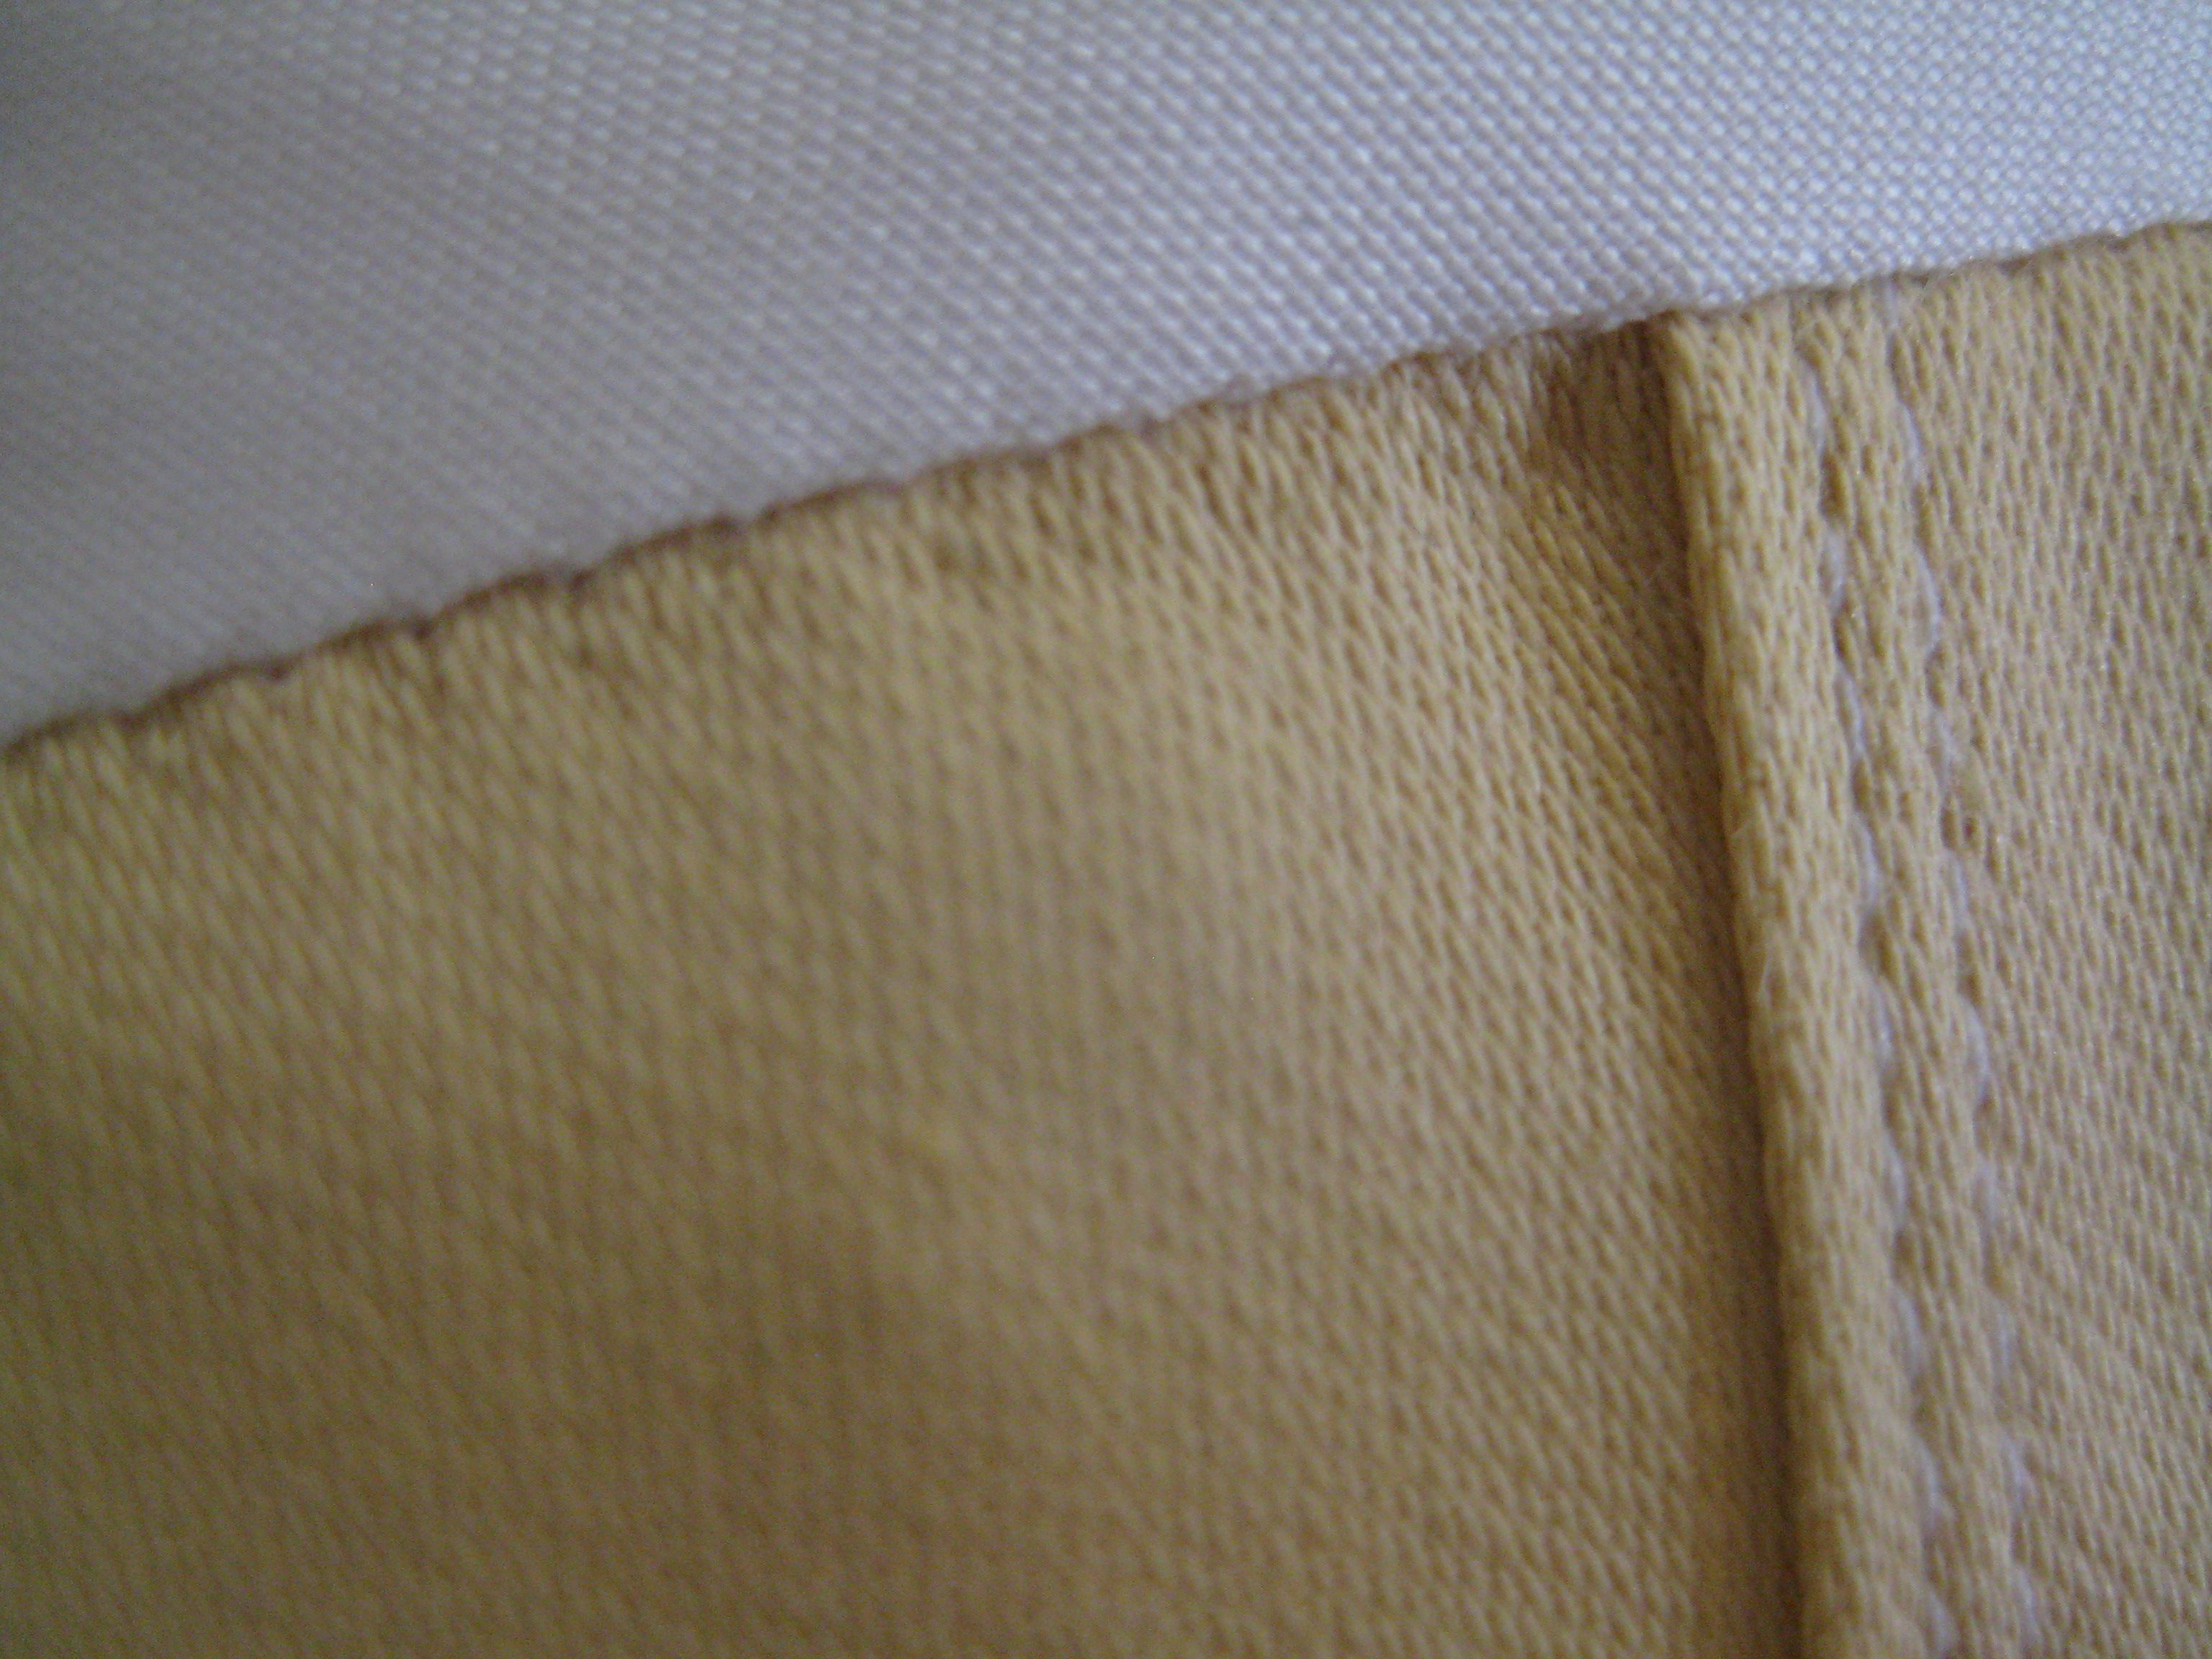 hem from right side of fabric